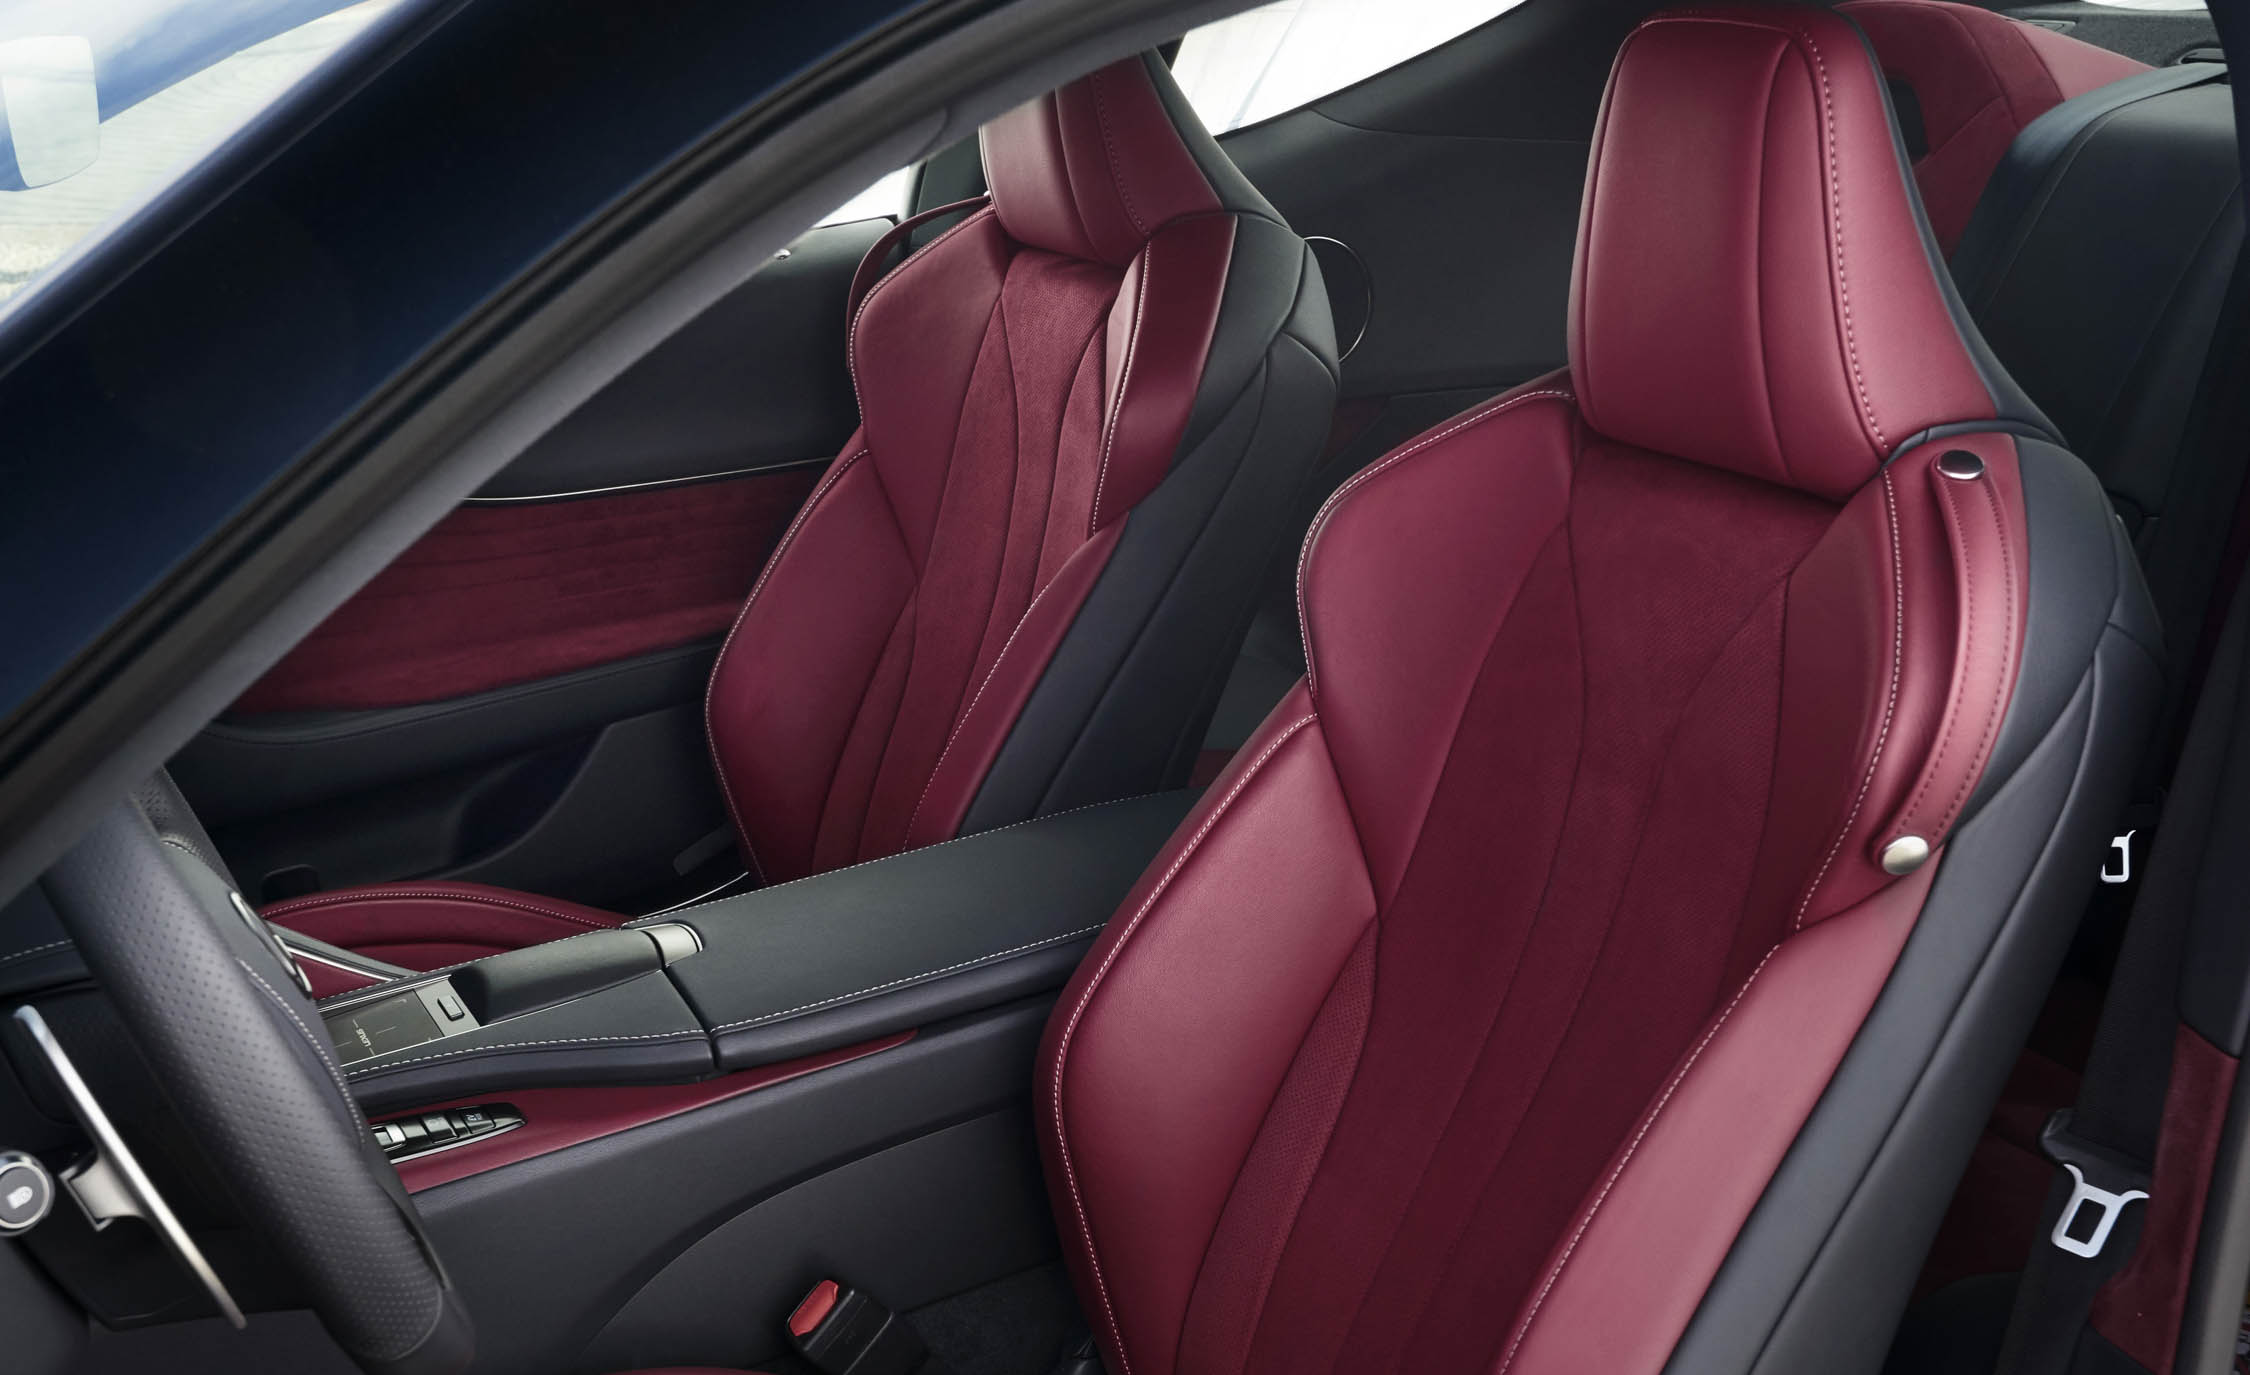 2018 Lexus Lc 500h Interior Seats Front (View 34 of 84)